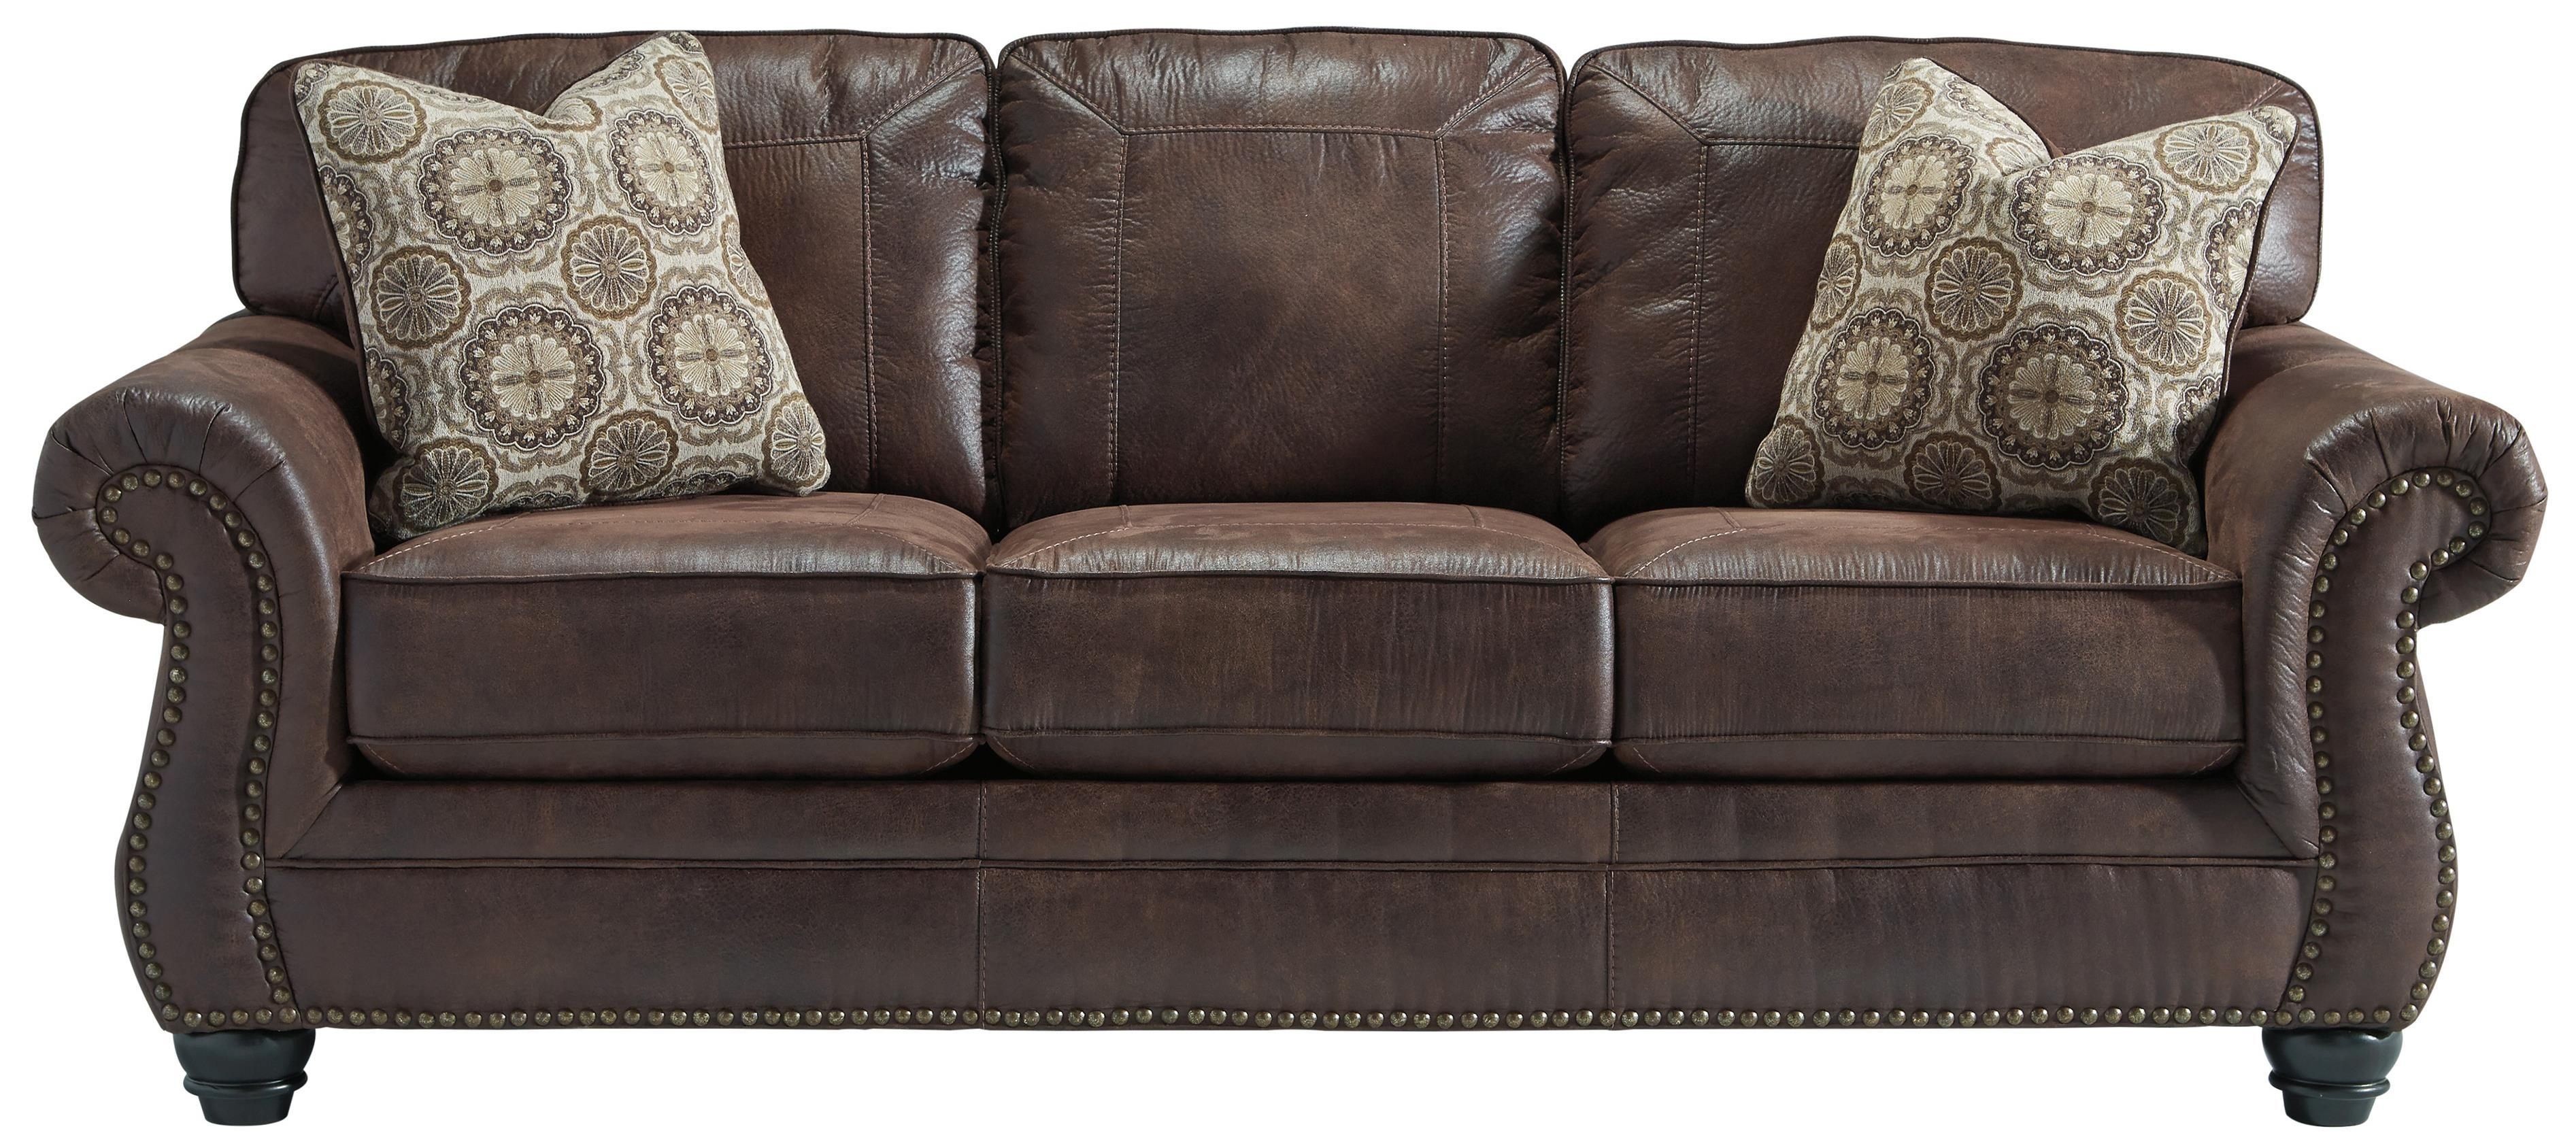 Benchcraftashley Breville Faux Leather Sofa With Rolled Arms Intended For Benchcraft Leather Sofas (Image 13 of 20)